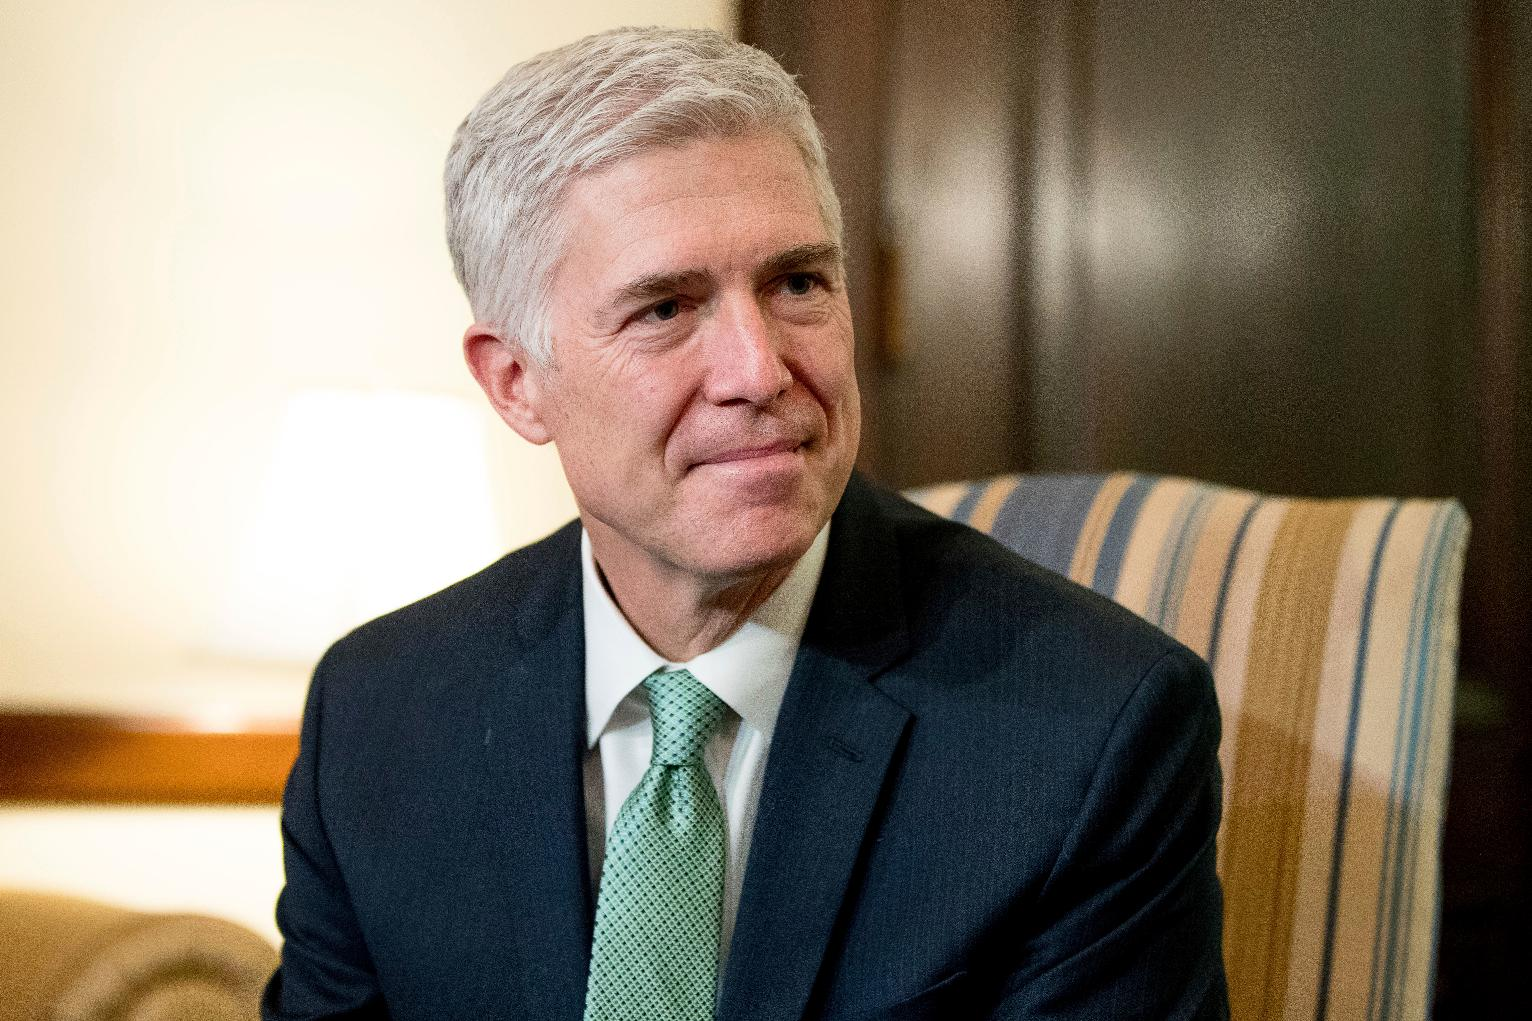 Neil Gorsuch Hearings Set to Begin, Jurist Seen by Many as Smart, Modest Nominee for High Court